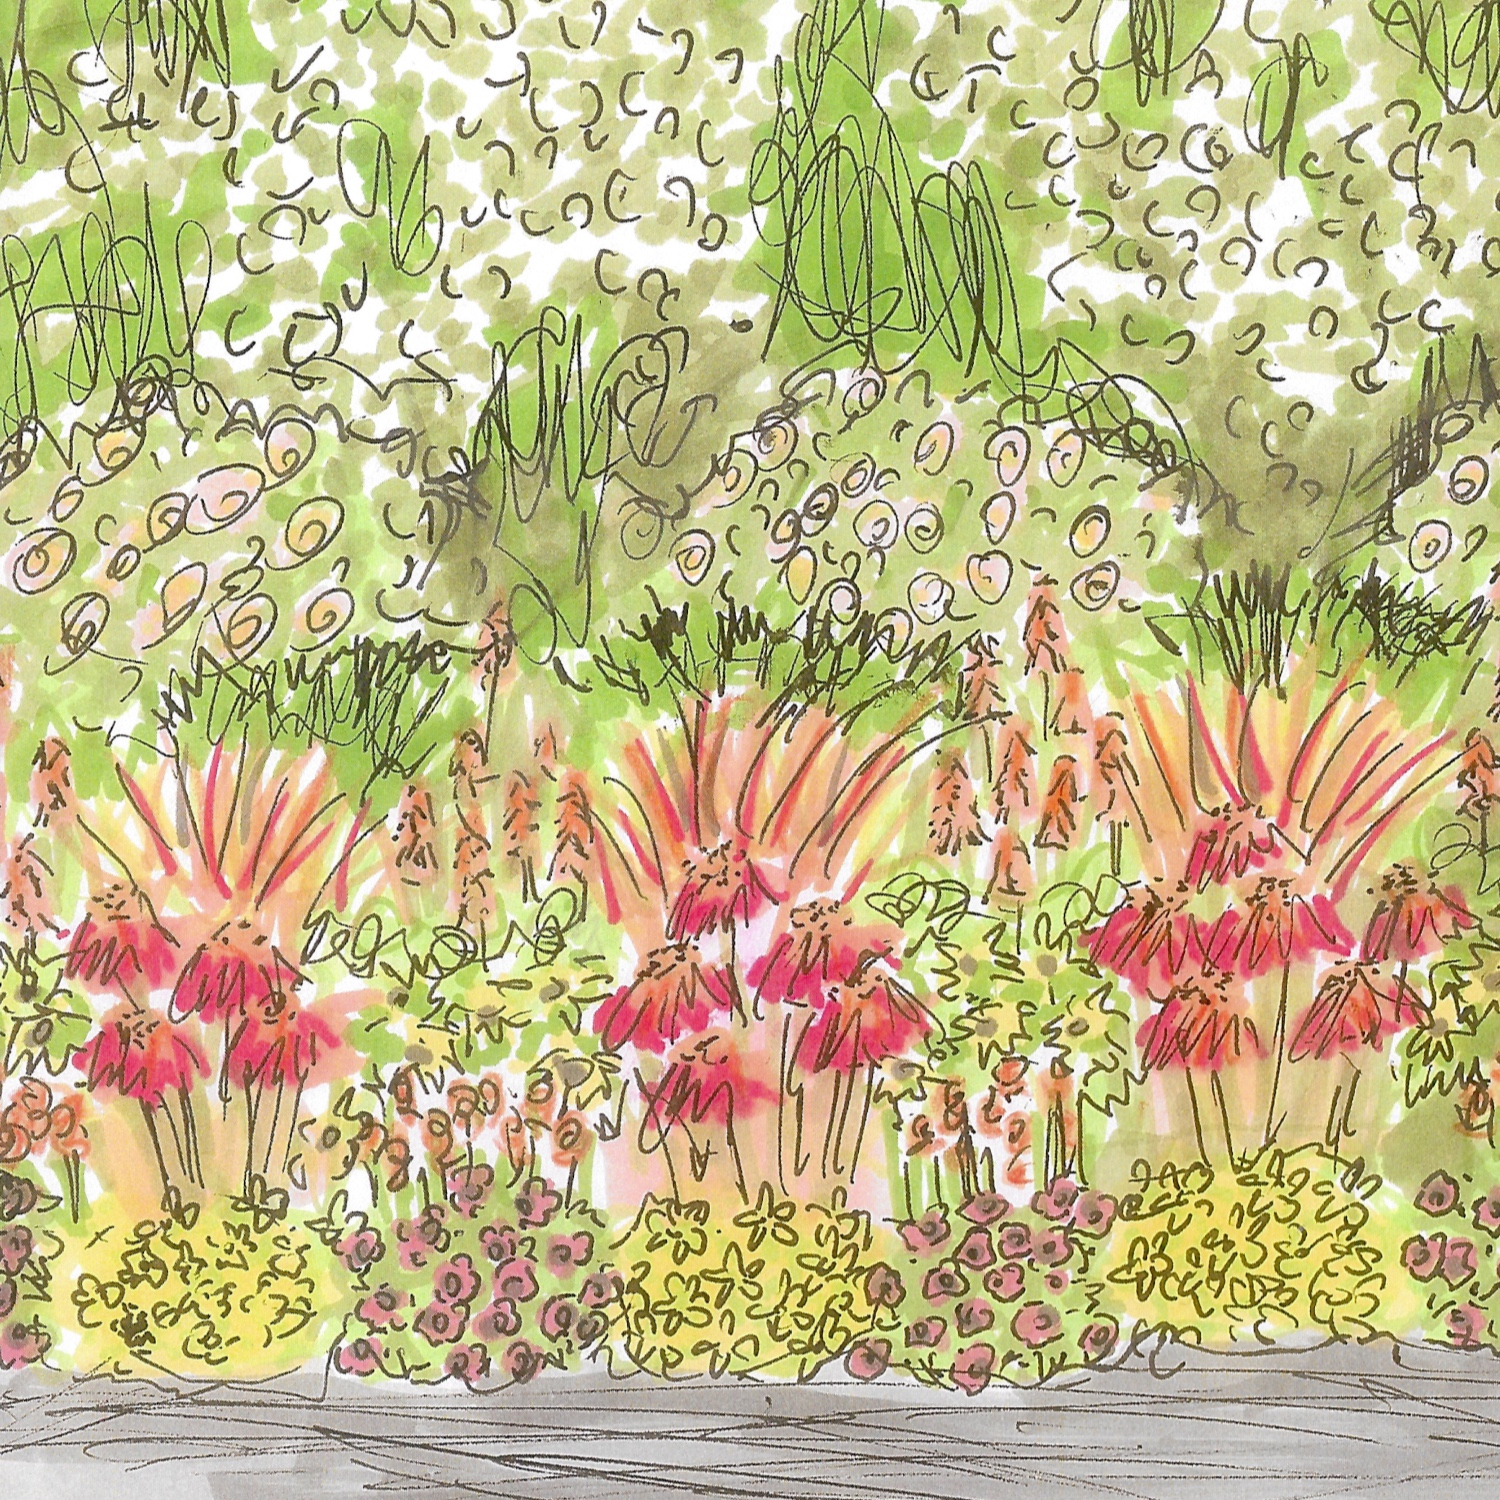 illustration-plant-flower-plant-bed-small-bedding-area-pots-and-pateriors-edinburgh.jpg